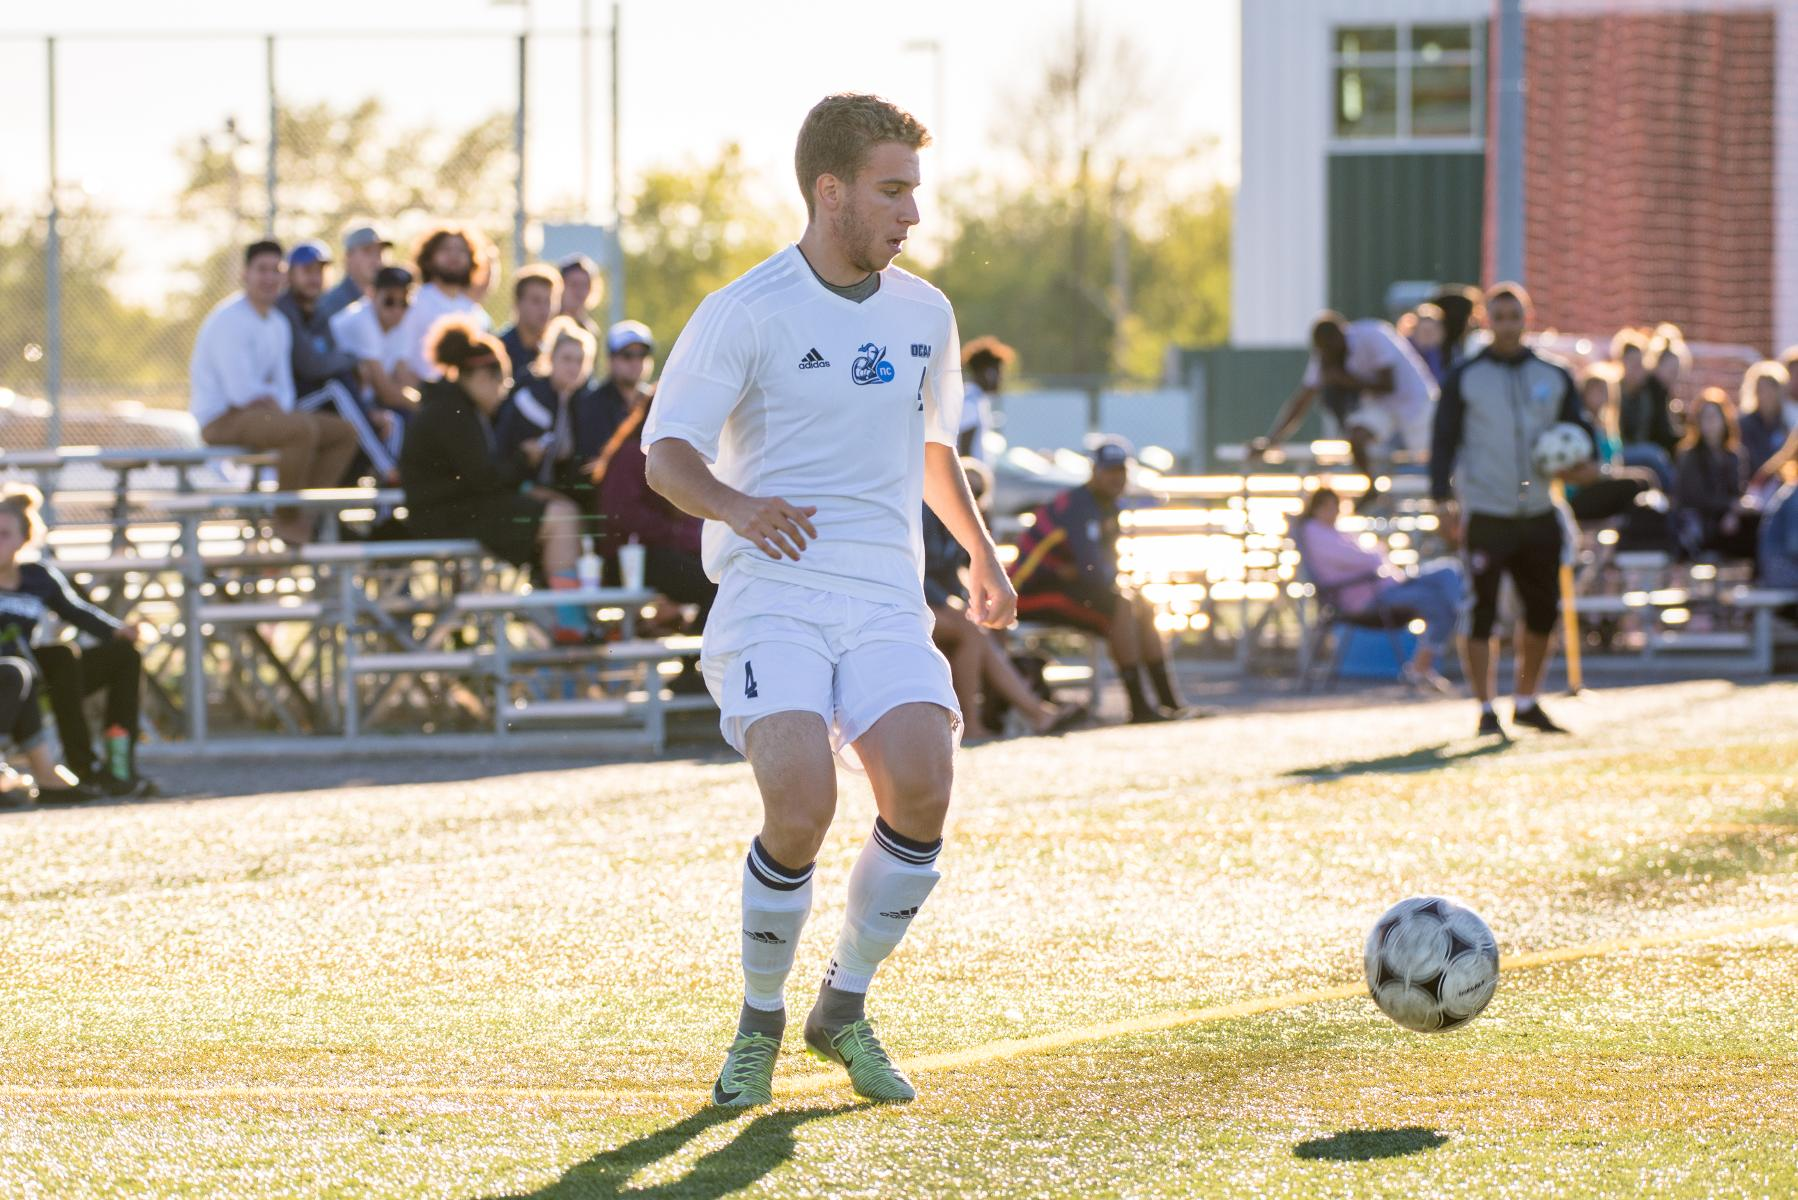 Preview: Men's Soccer look to rebound in home debut